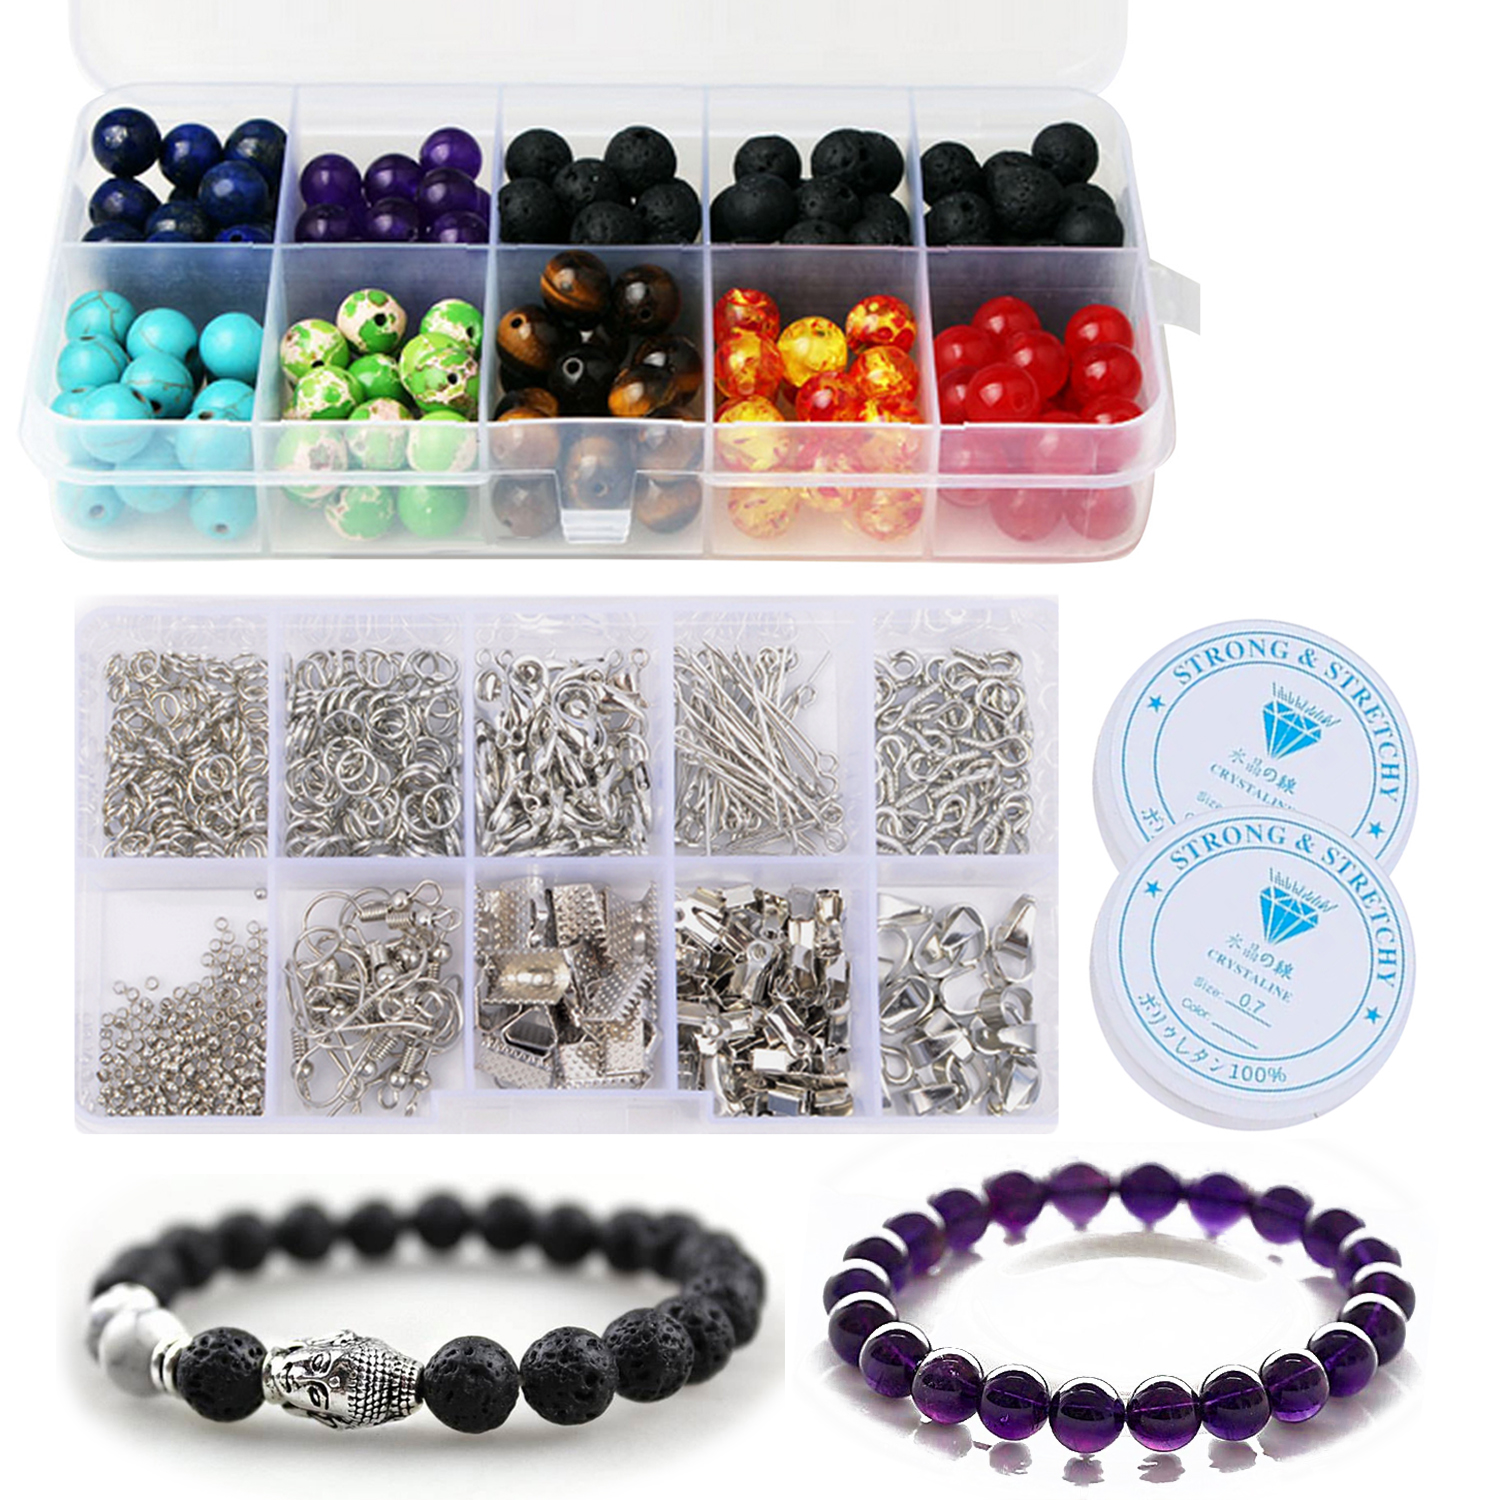 640Pcs DIY Craft Making Finding Tools Kit With 200Pcs 8mm Lava Chakra Beads 2 Roll Crystal String Toys Bracelet Handmake Gifts